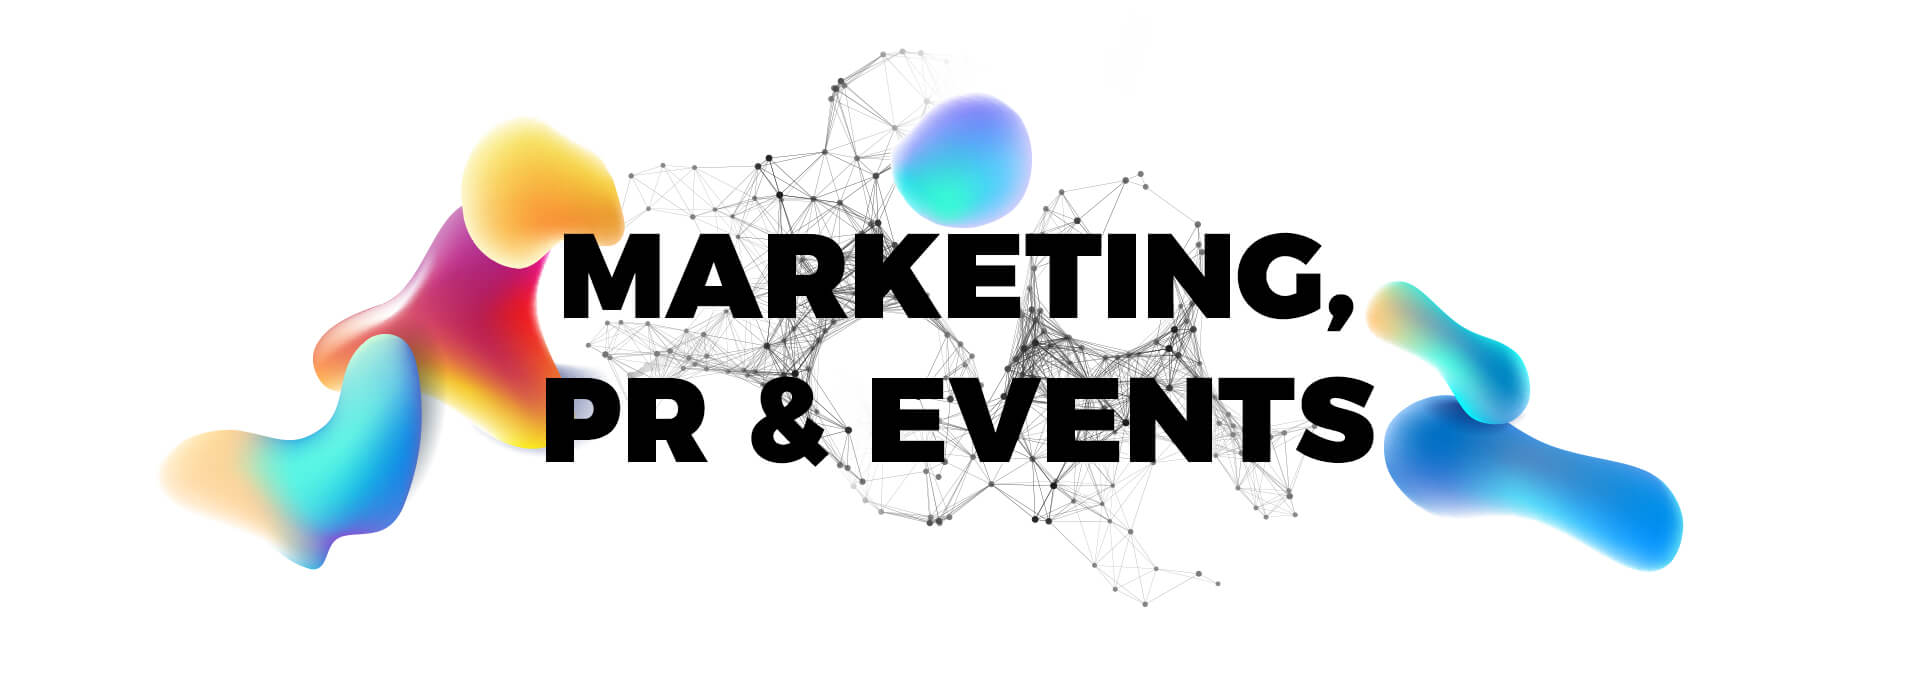 Pattern Marketing, PR & EVents Services